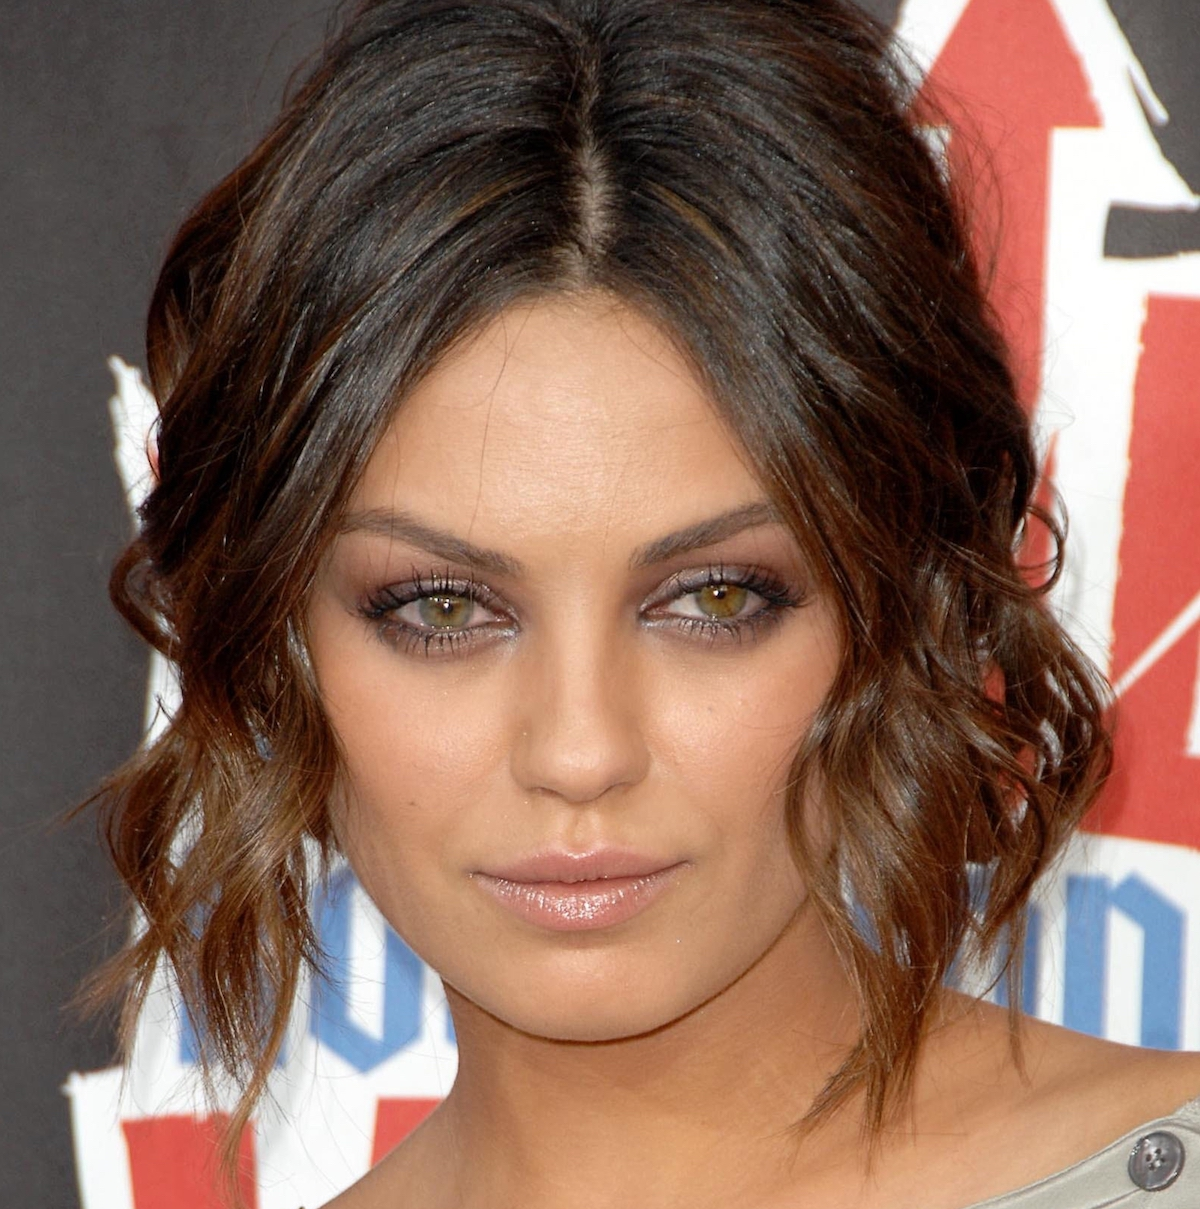 Haircuts For Round Faces Slimming Hairstyles Shesaid